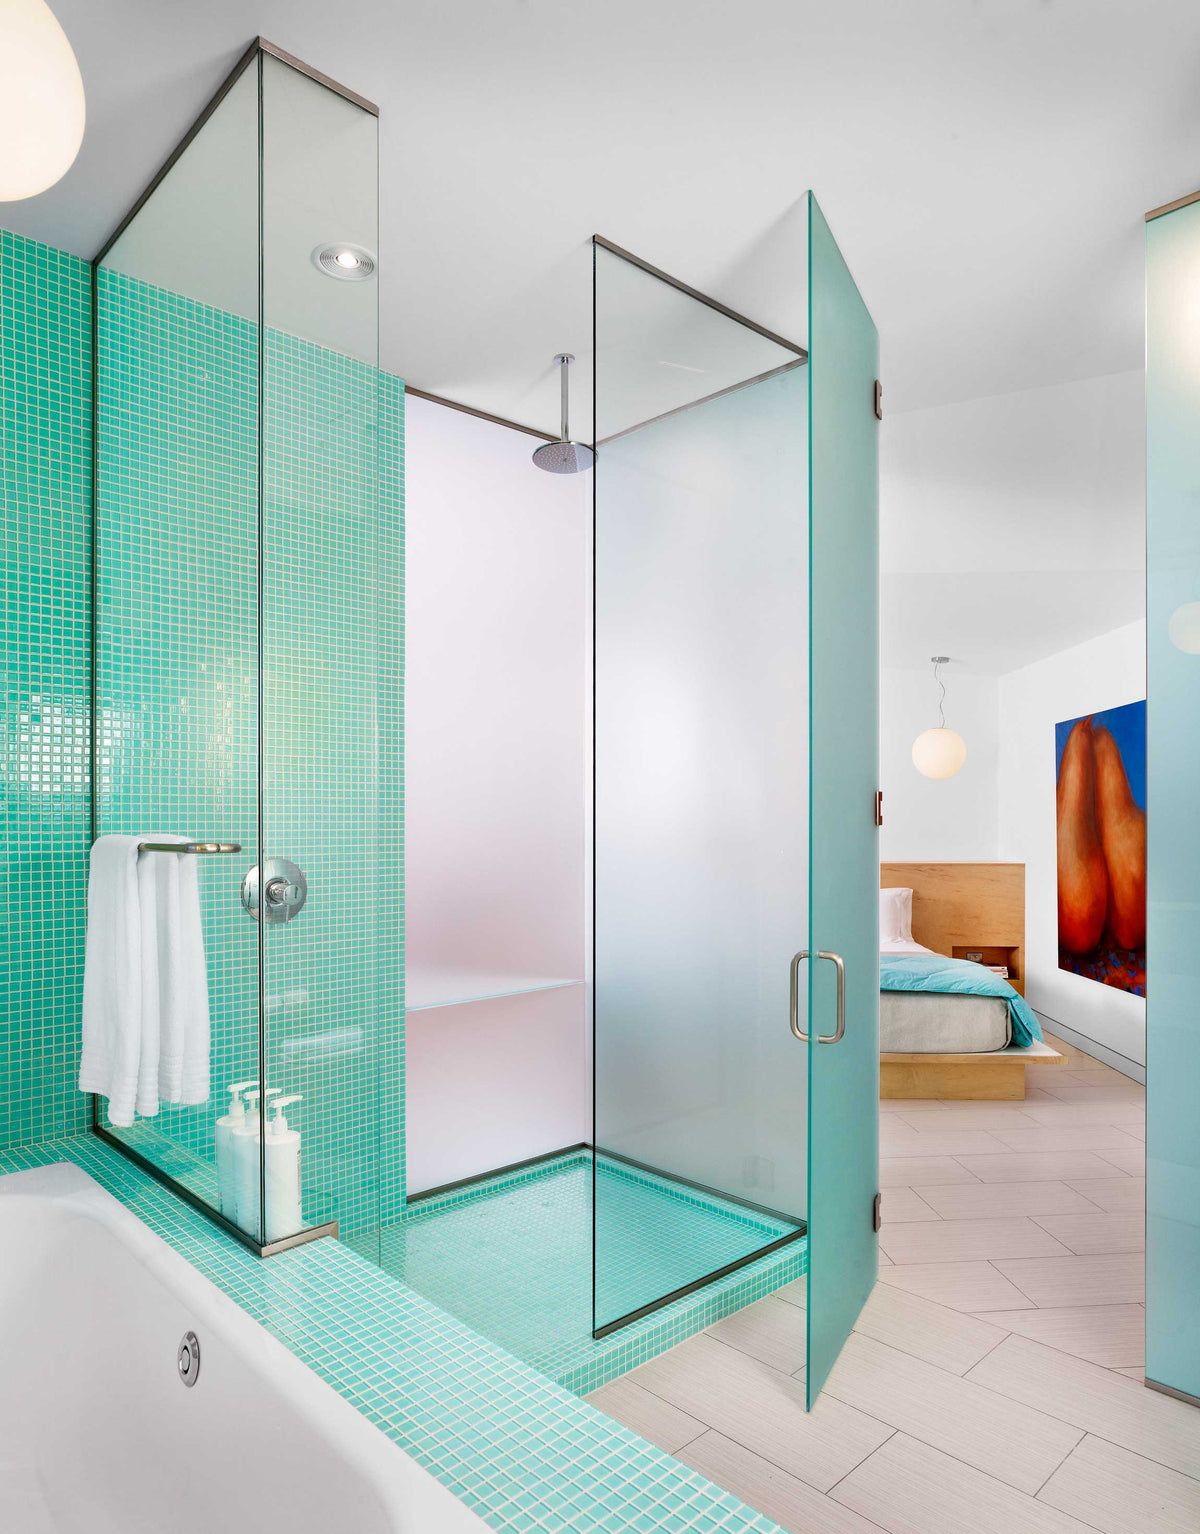 Kimber Modern, Austin - bright hotel bathroom with aqua tiling and walk in shower